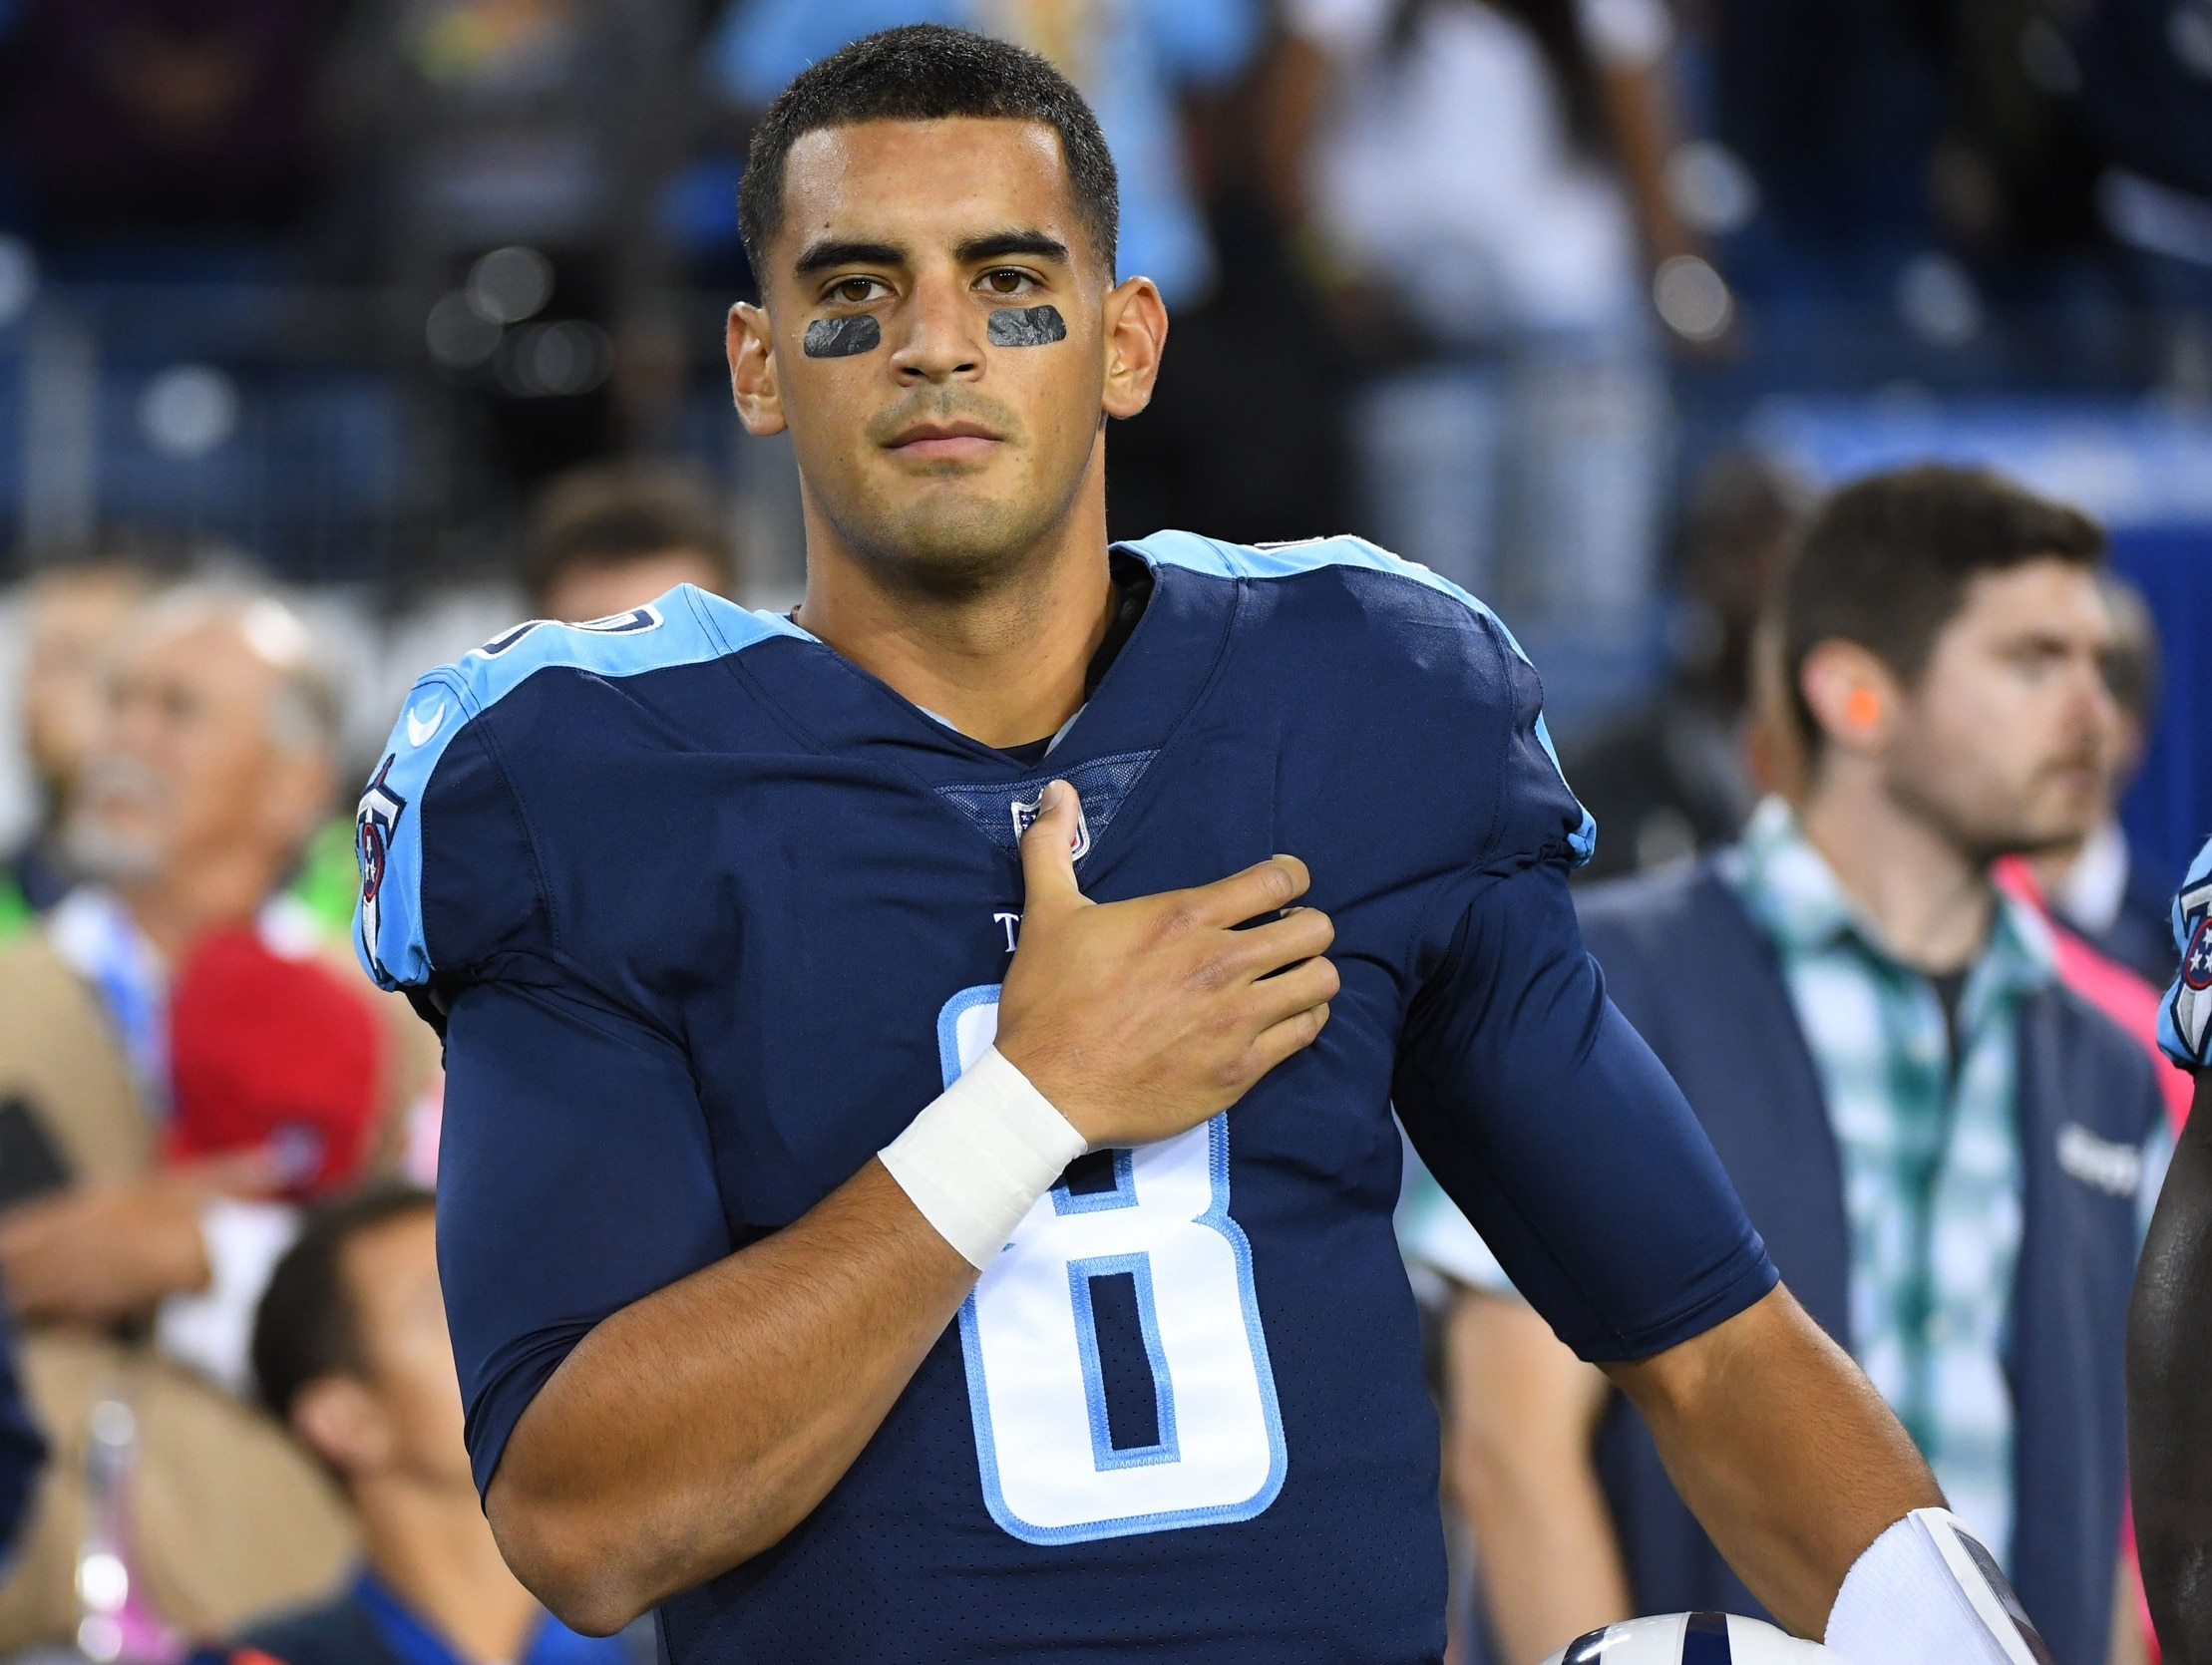 Marcus Mariota providing 1K meals per day to students in hometown of Honolulu